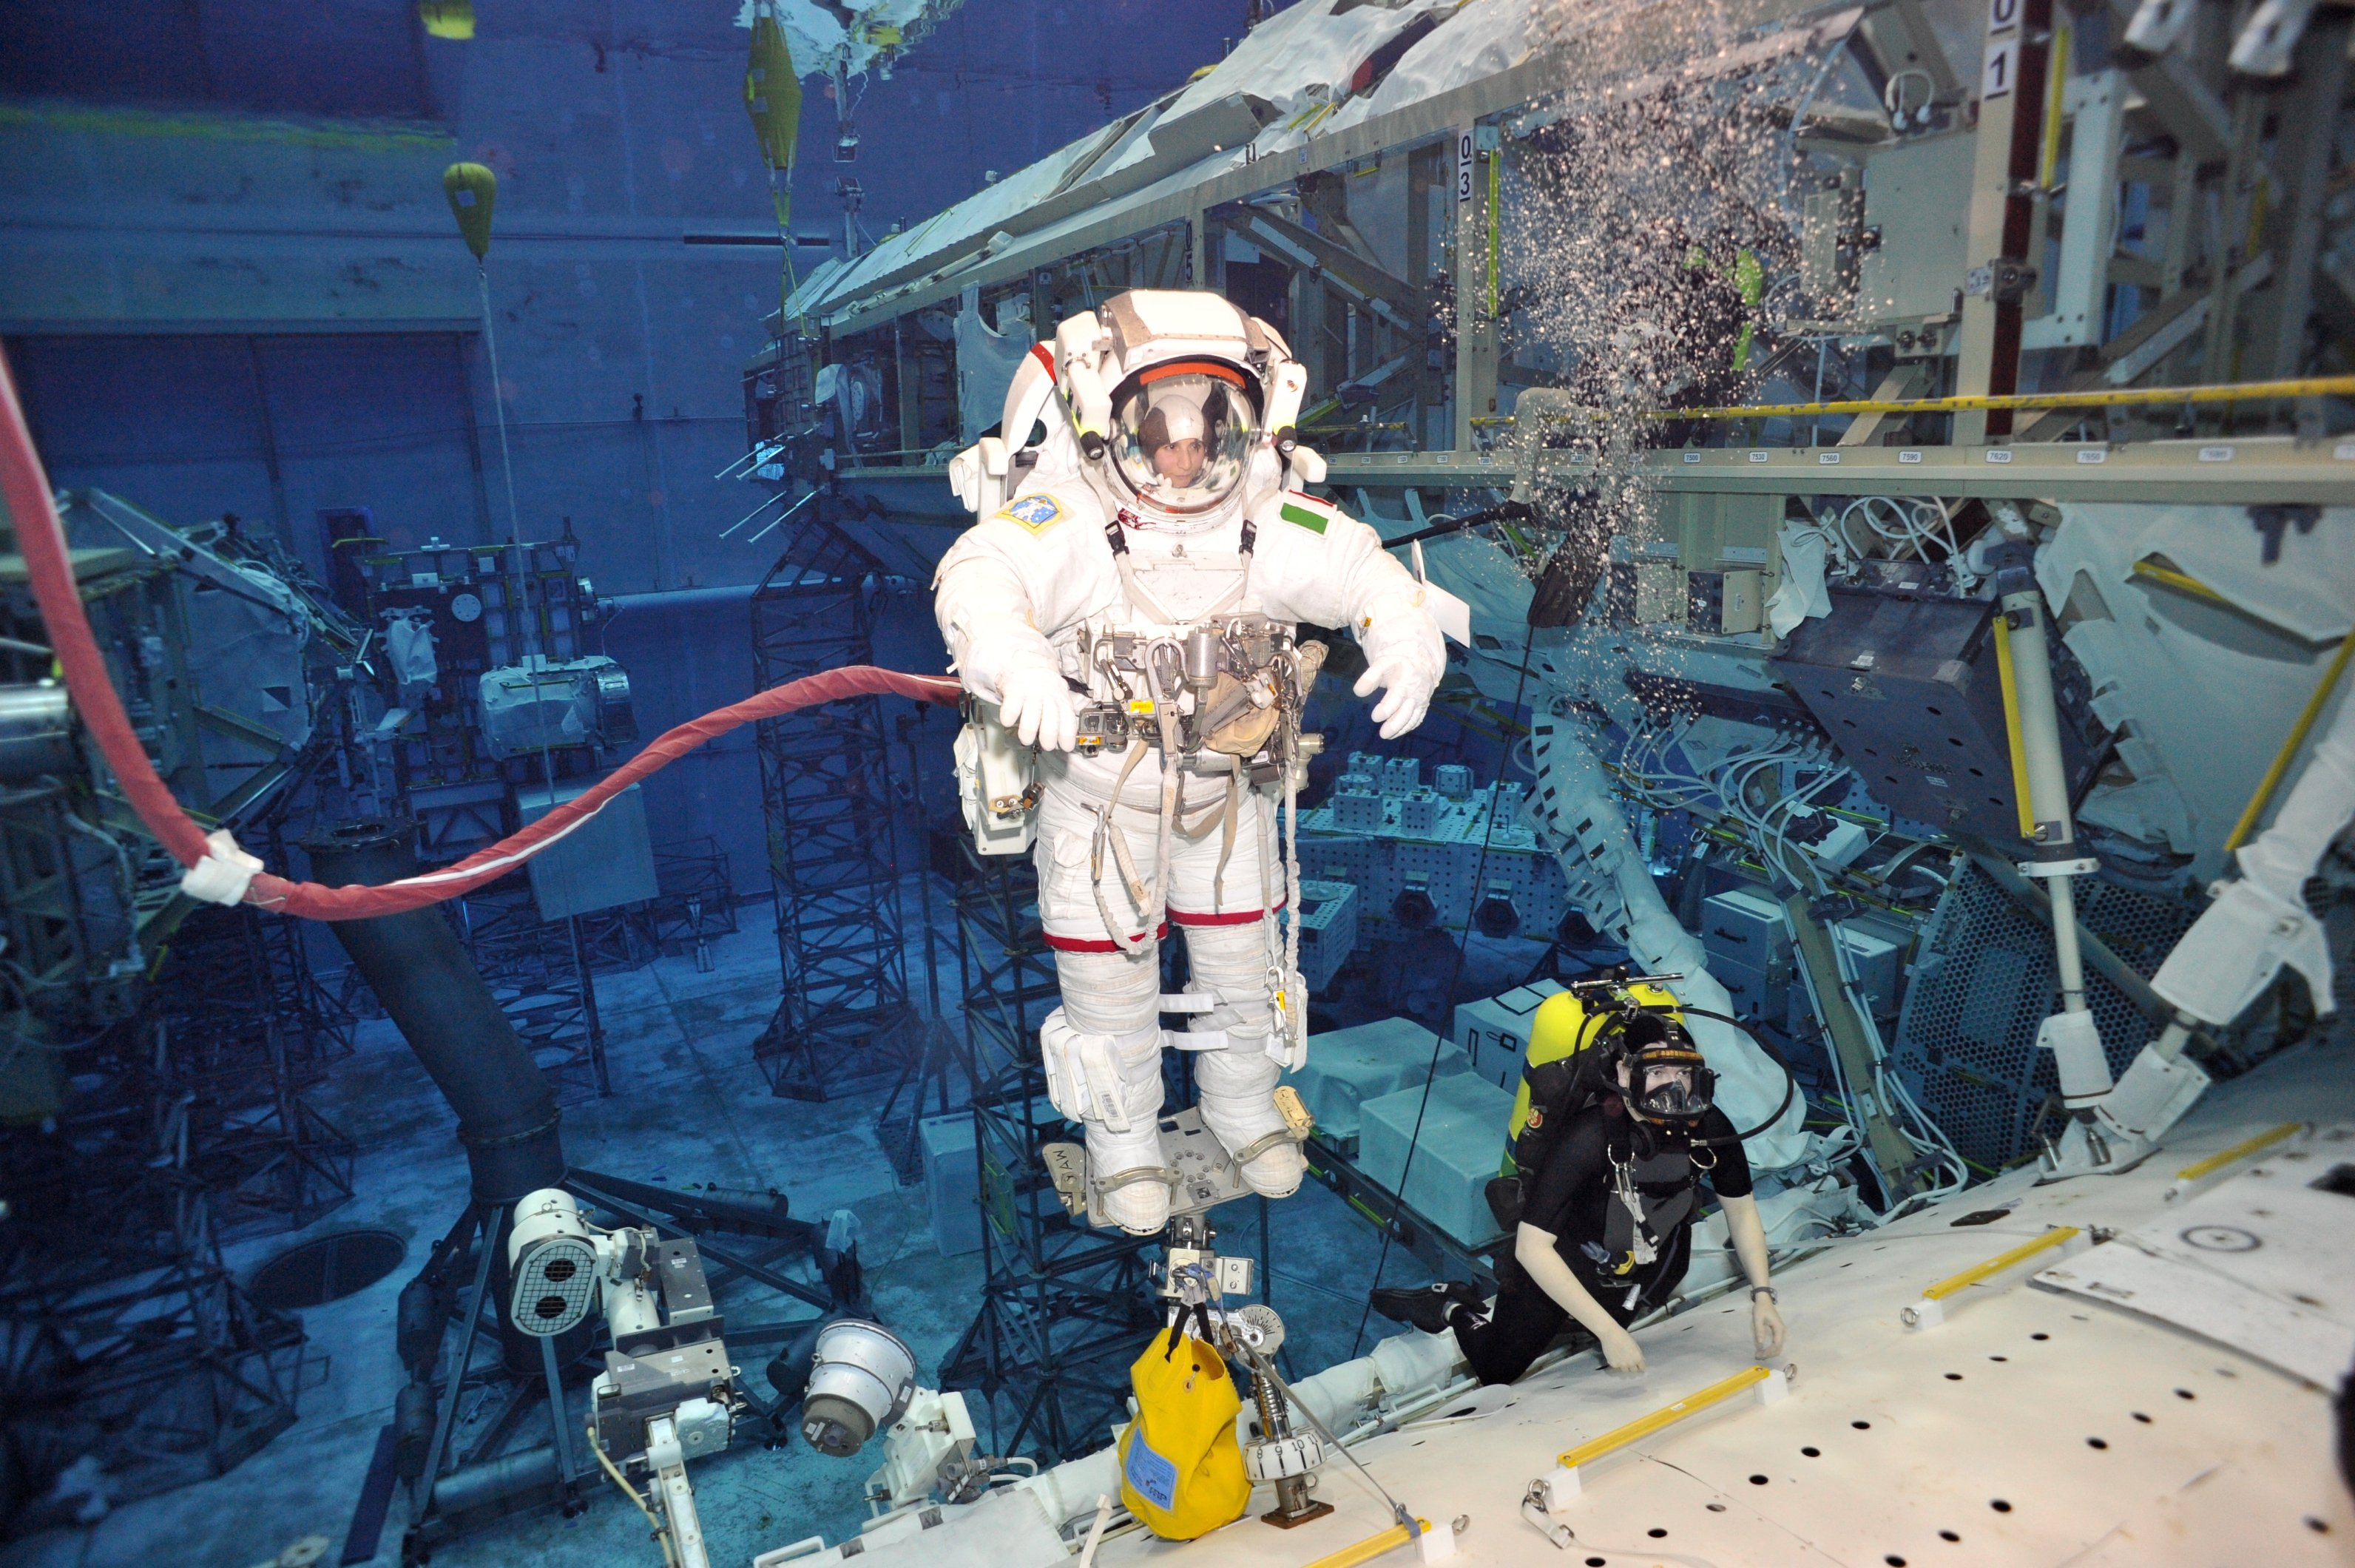 A day as a cyborg | Astronaut Class of 2009